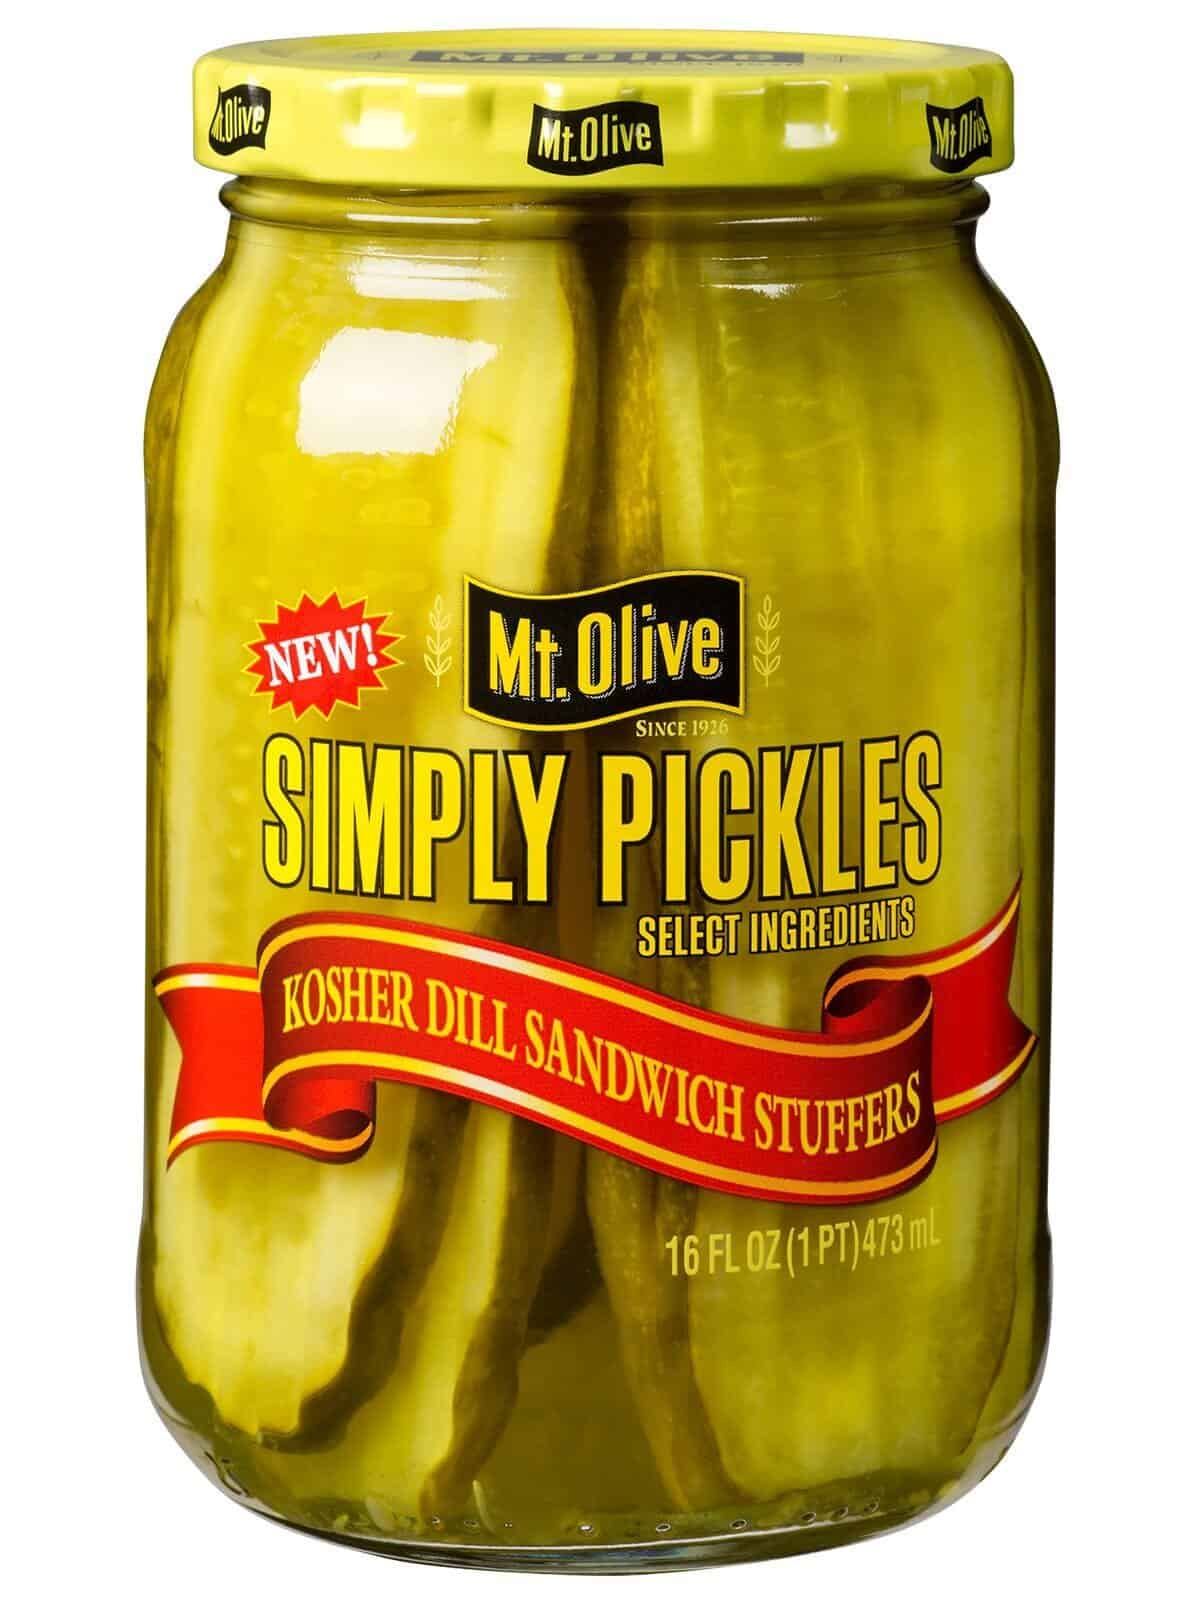 Simply Pickles Kosher Dill Sandwich Stuffers